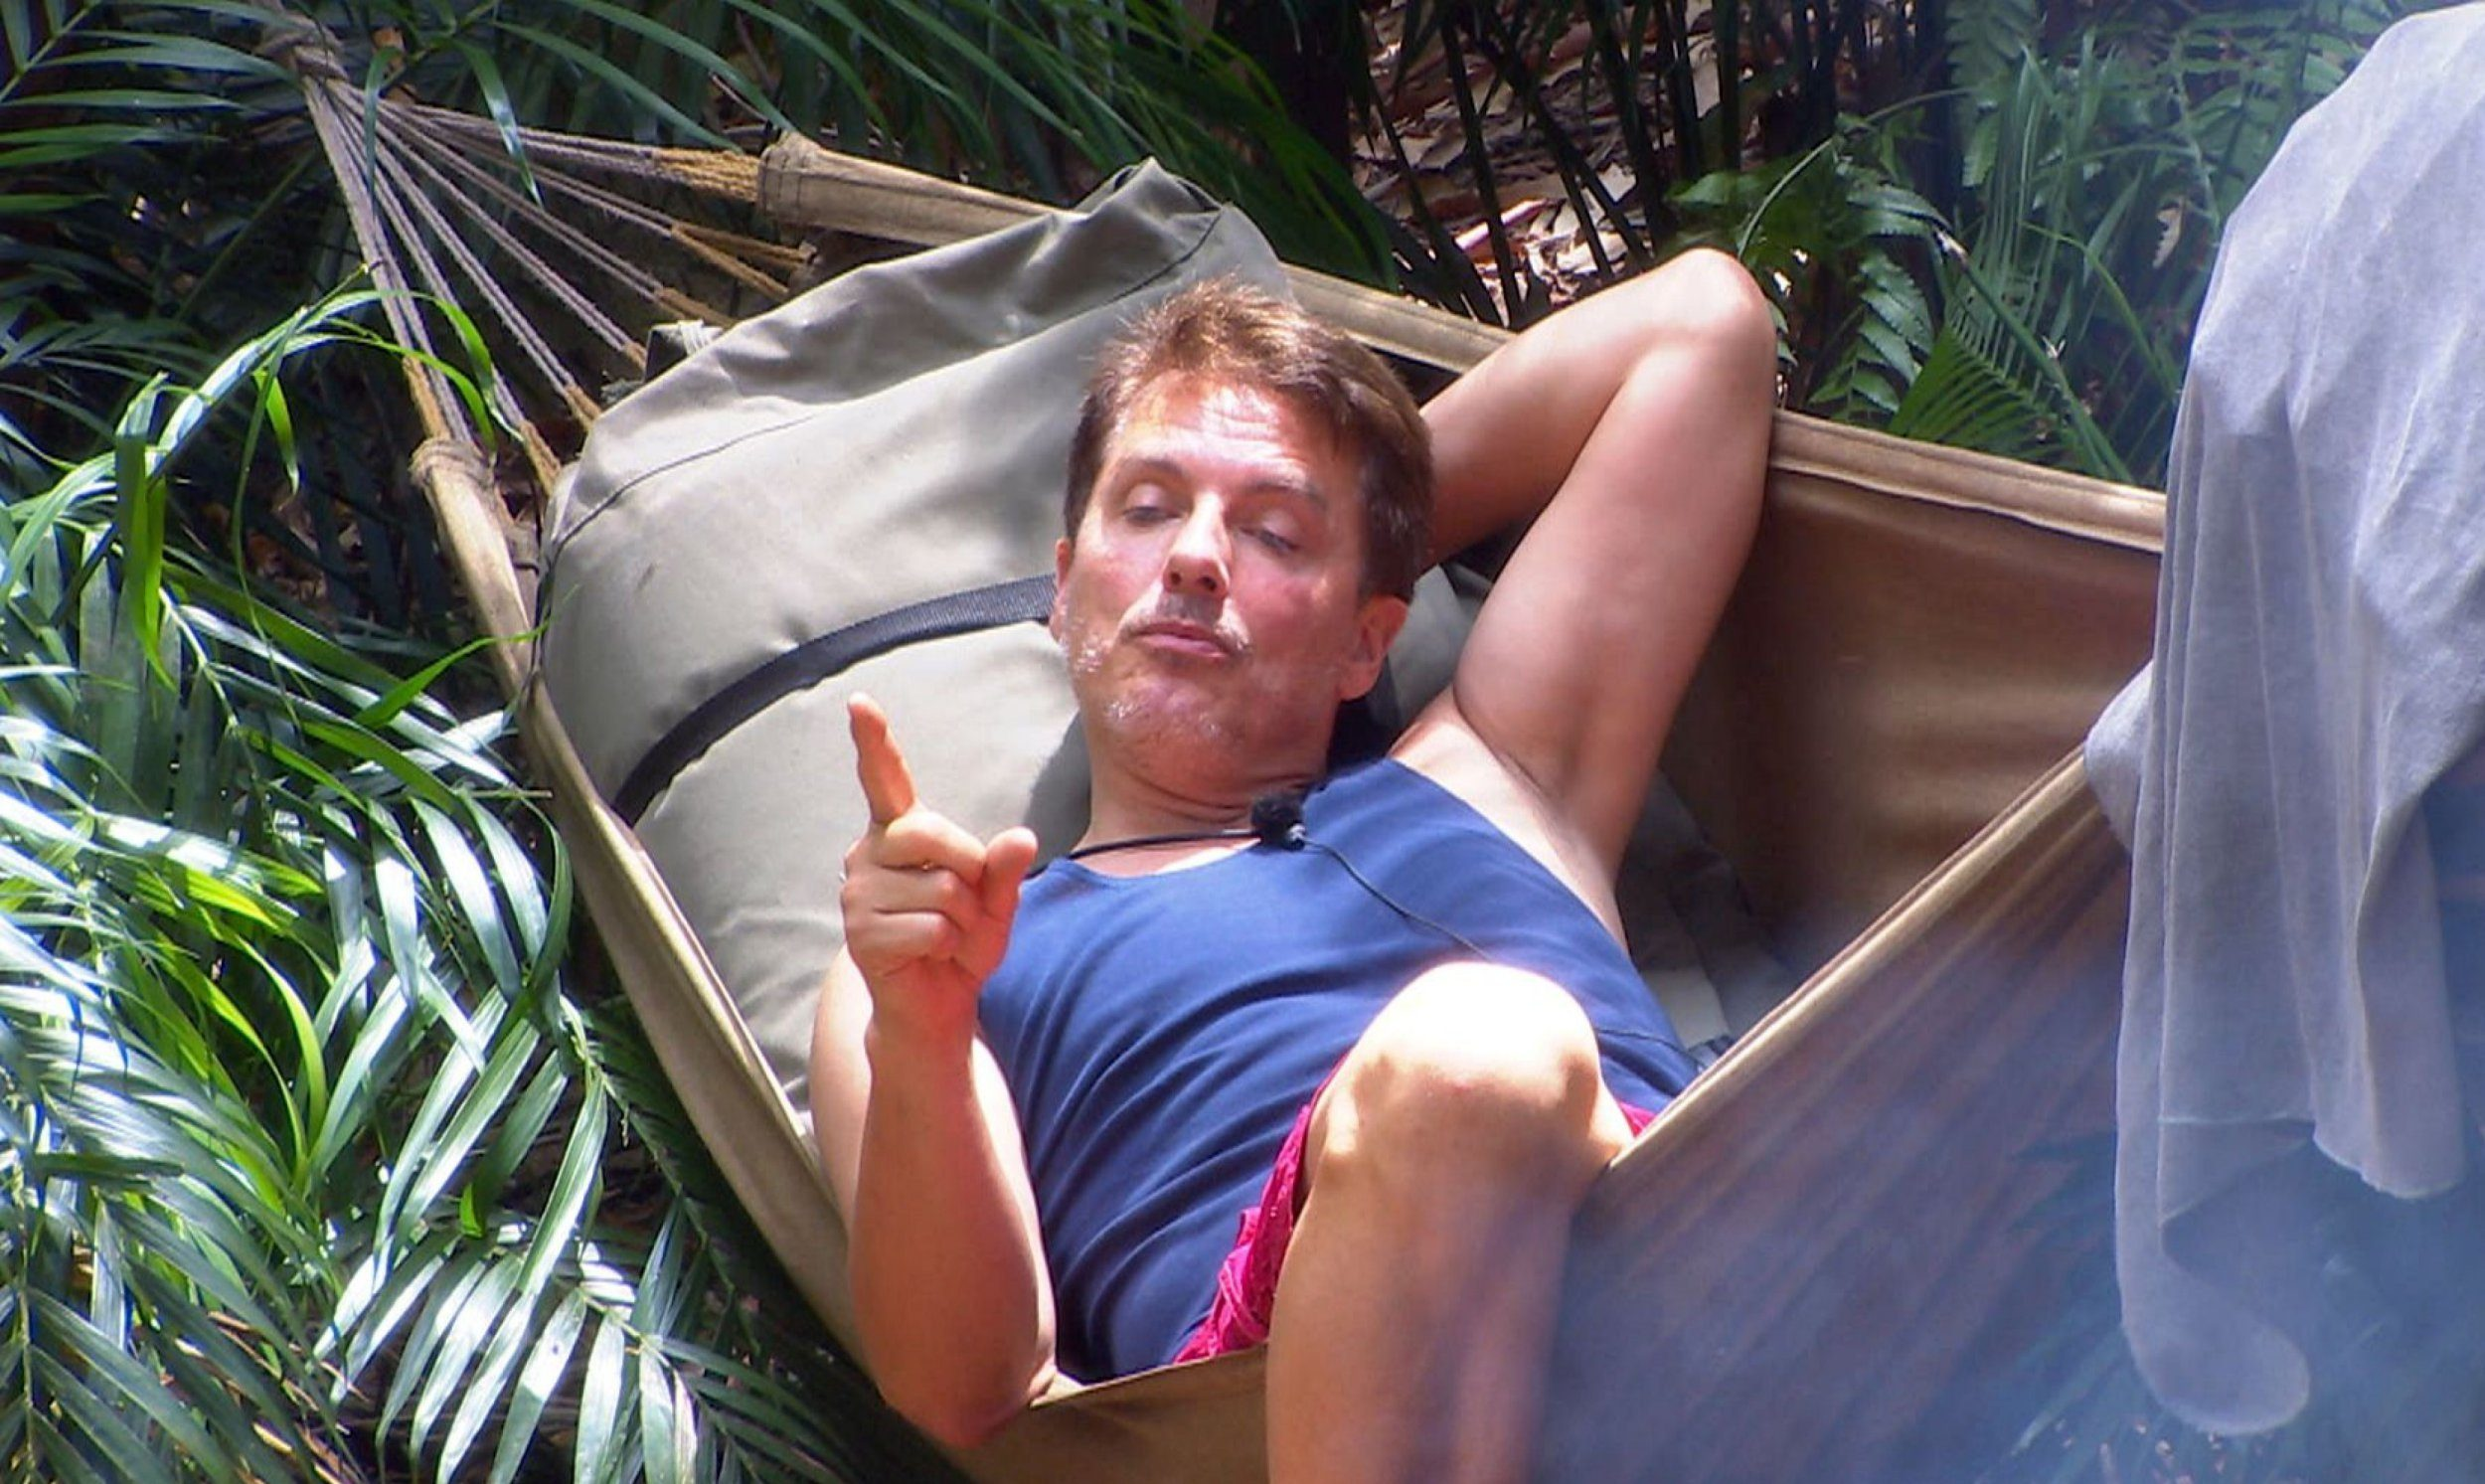 STRICT EMBARGO - NOT TO BE USED BEFORE 22:00 GMT, 28 NOV 2018 - EDITORIAL USE ONLY Mandatory Credit: Photo by ITV/REX (10001287fq) Nick Gets Knickered - John Barrowman 'I'm a Celebrity... Get Me Out of Here!' TV Show, Series 18, Australia - 28 Nov 2018